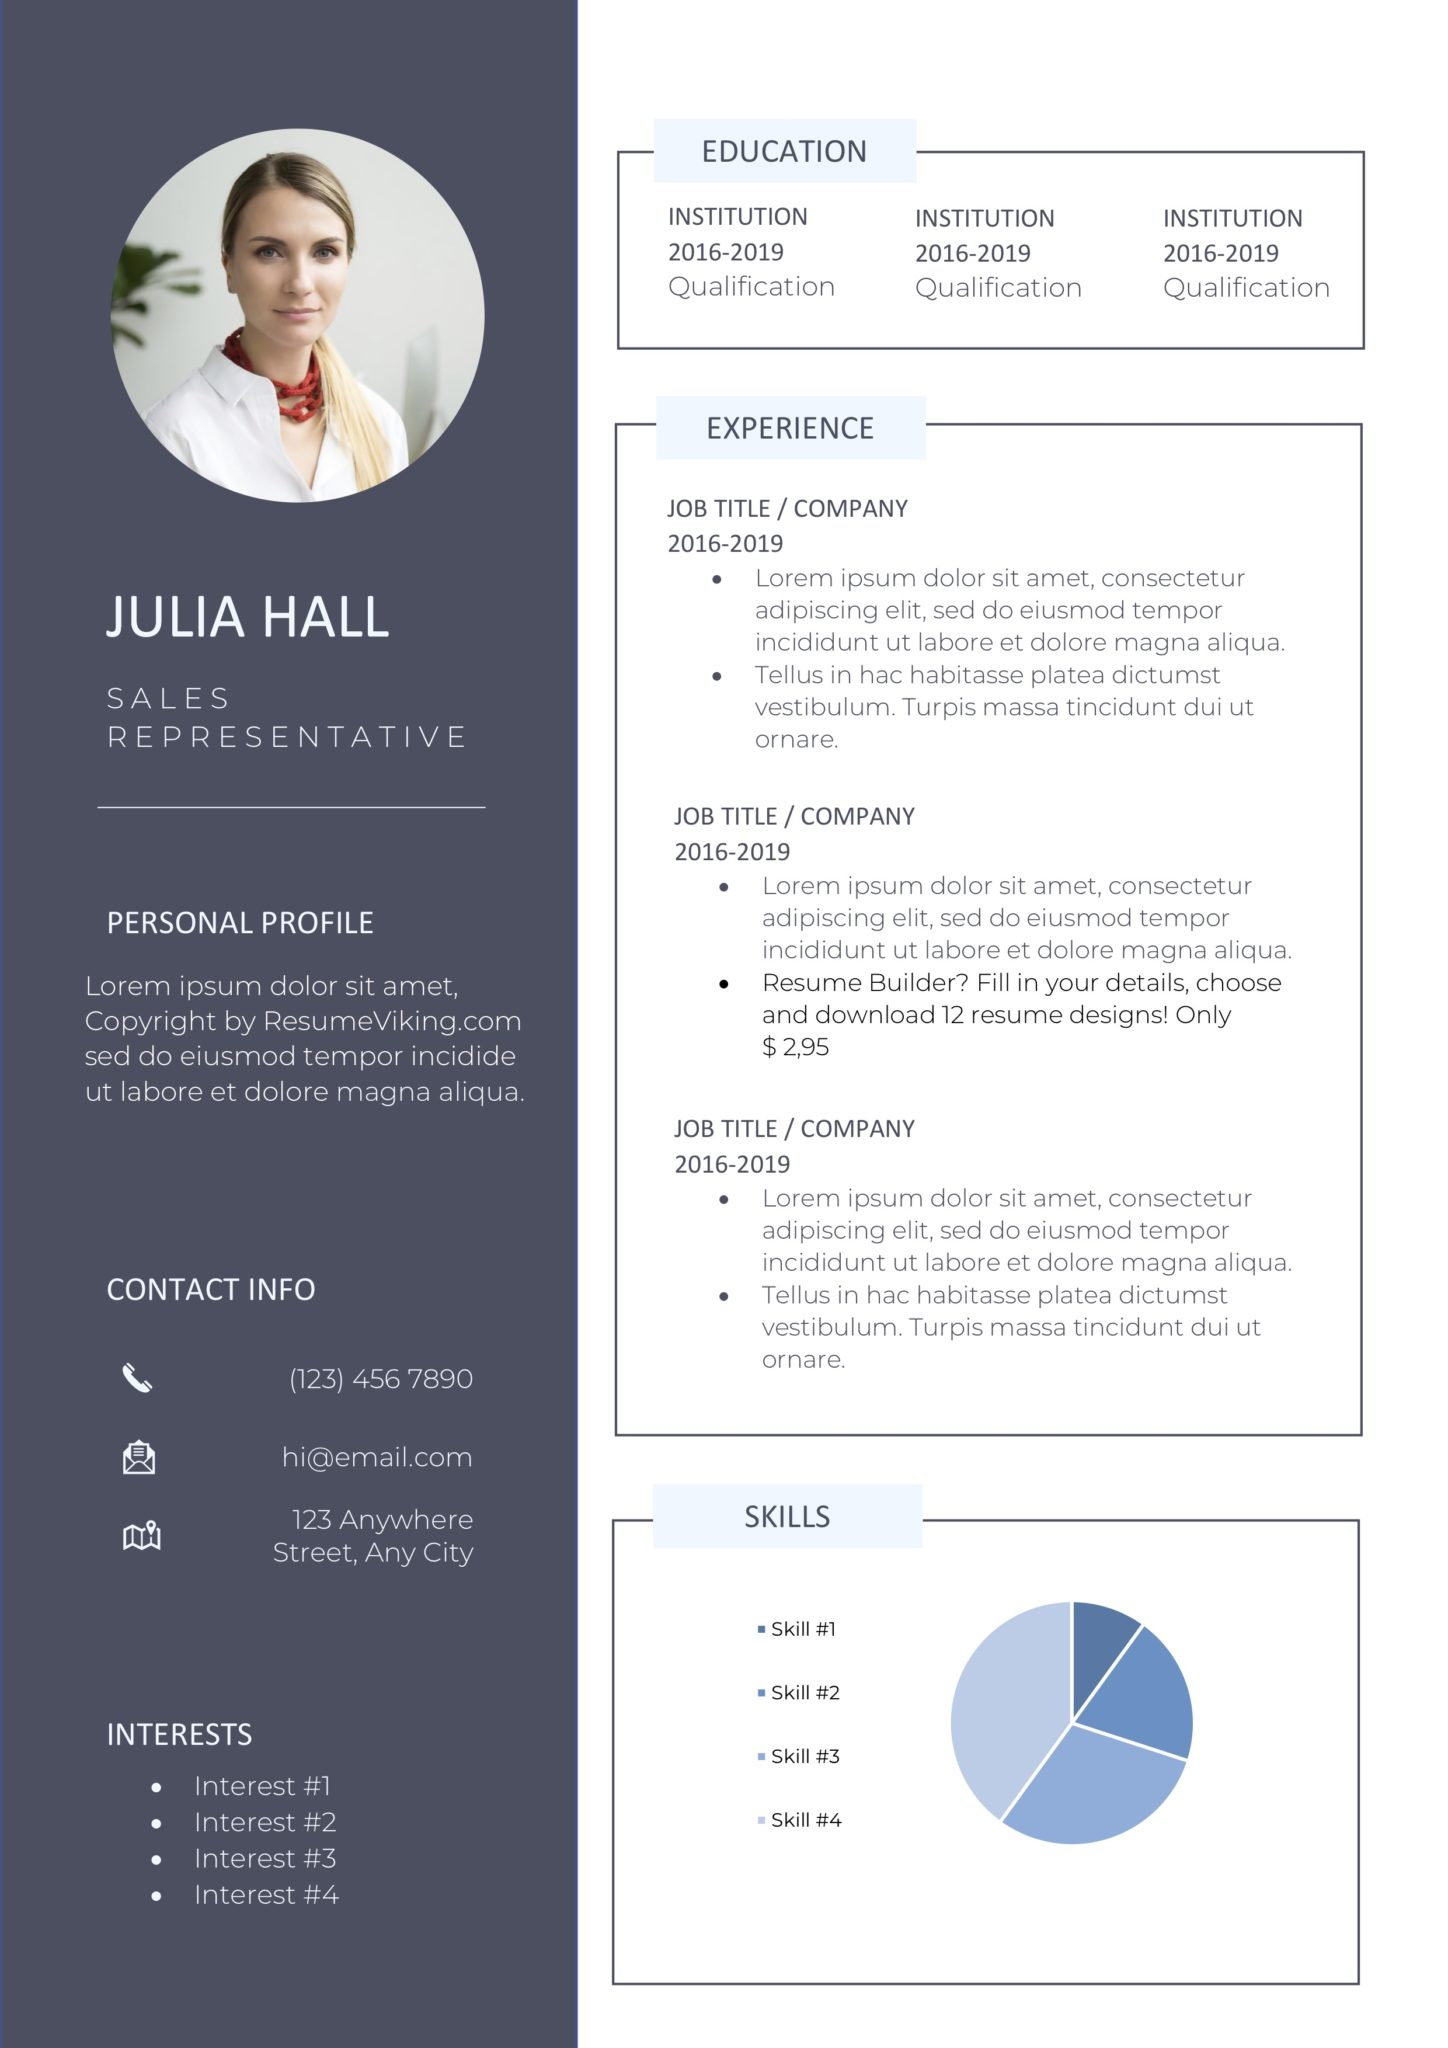 free word resume templates in ms template resumeviking scaled food service vp digital Resume Free Resume Template Download 2020